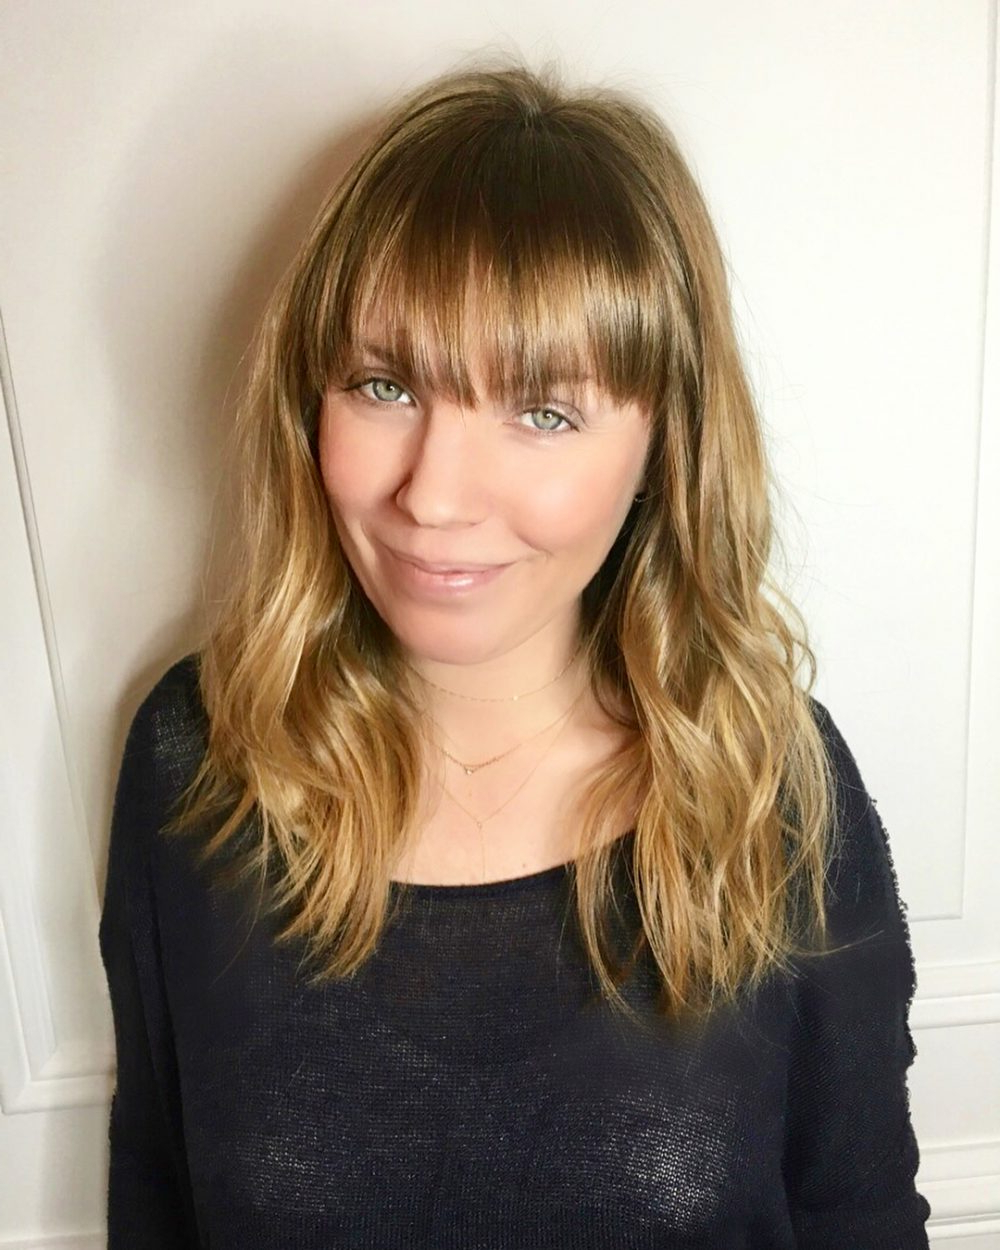 53 Popular Medium Length Hairstyles With Bangs In 2019 For Recent Medium Hairstyles For Women With Bangs (Gallery 5 of 20)